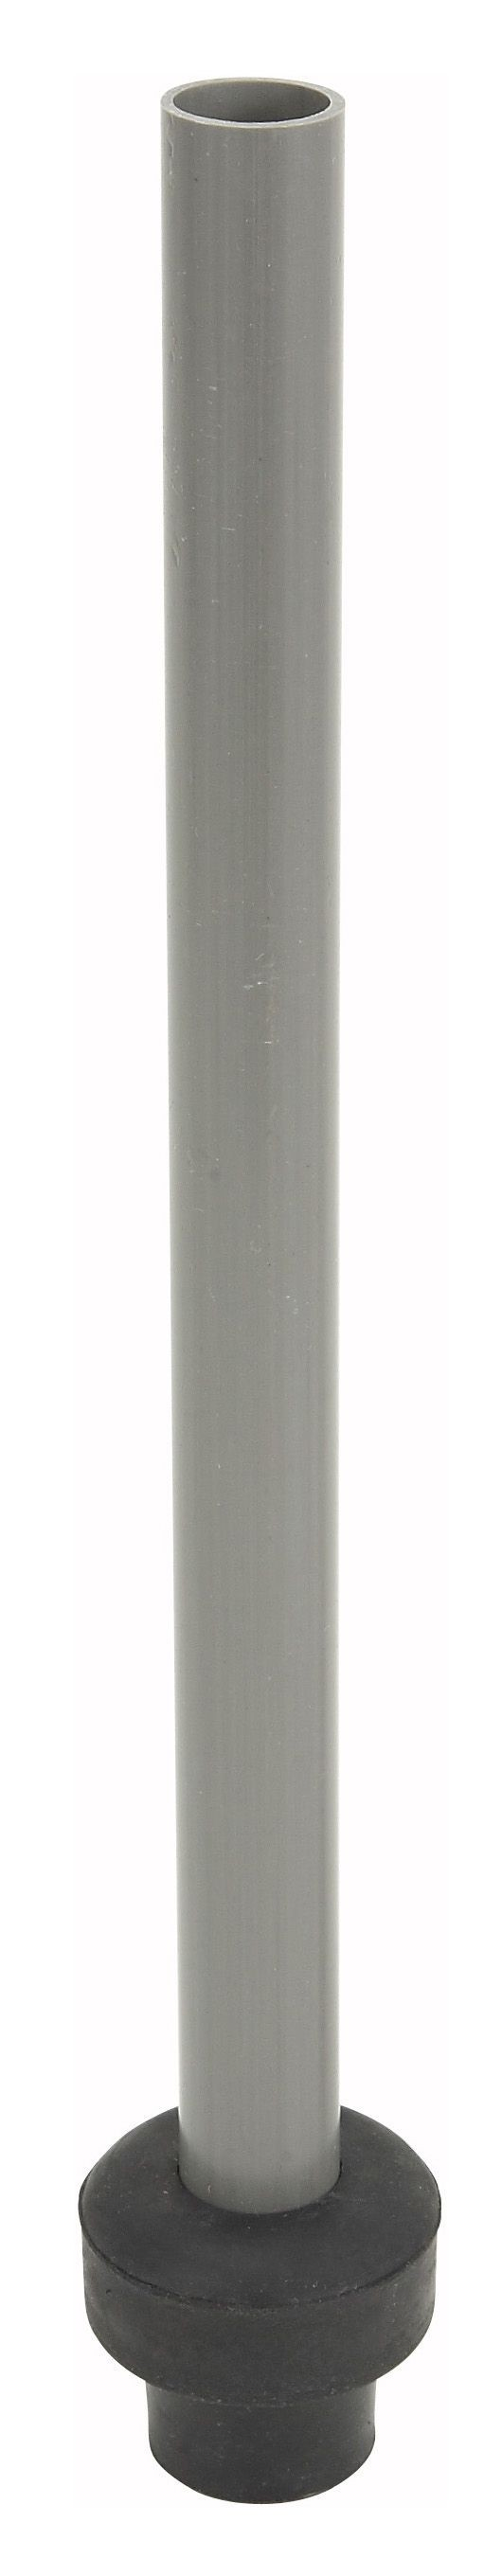 Winco OP-11 Overflow Pipe 11""